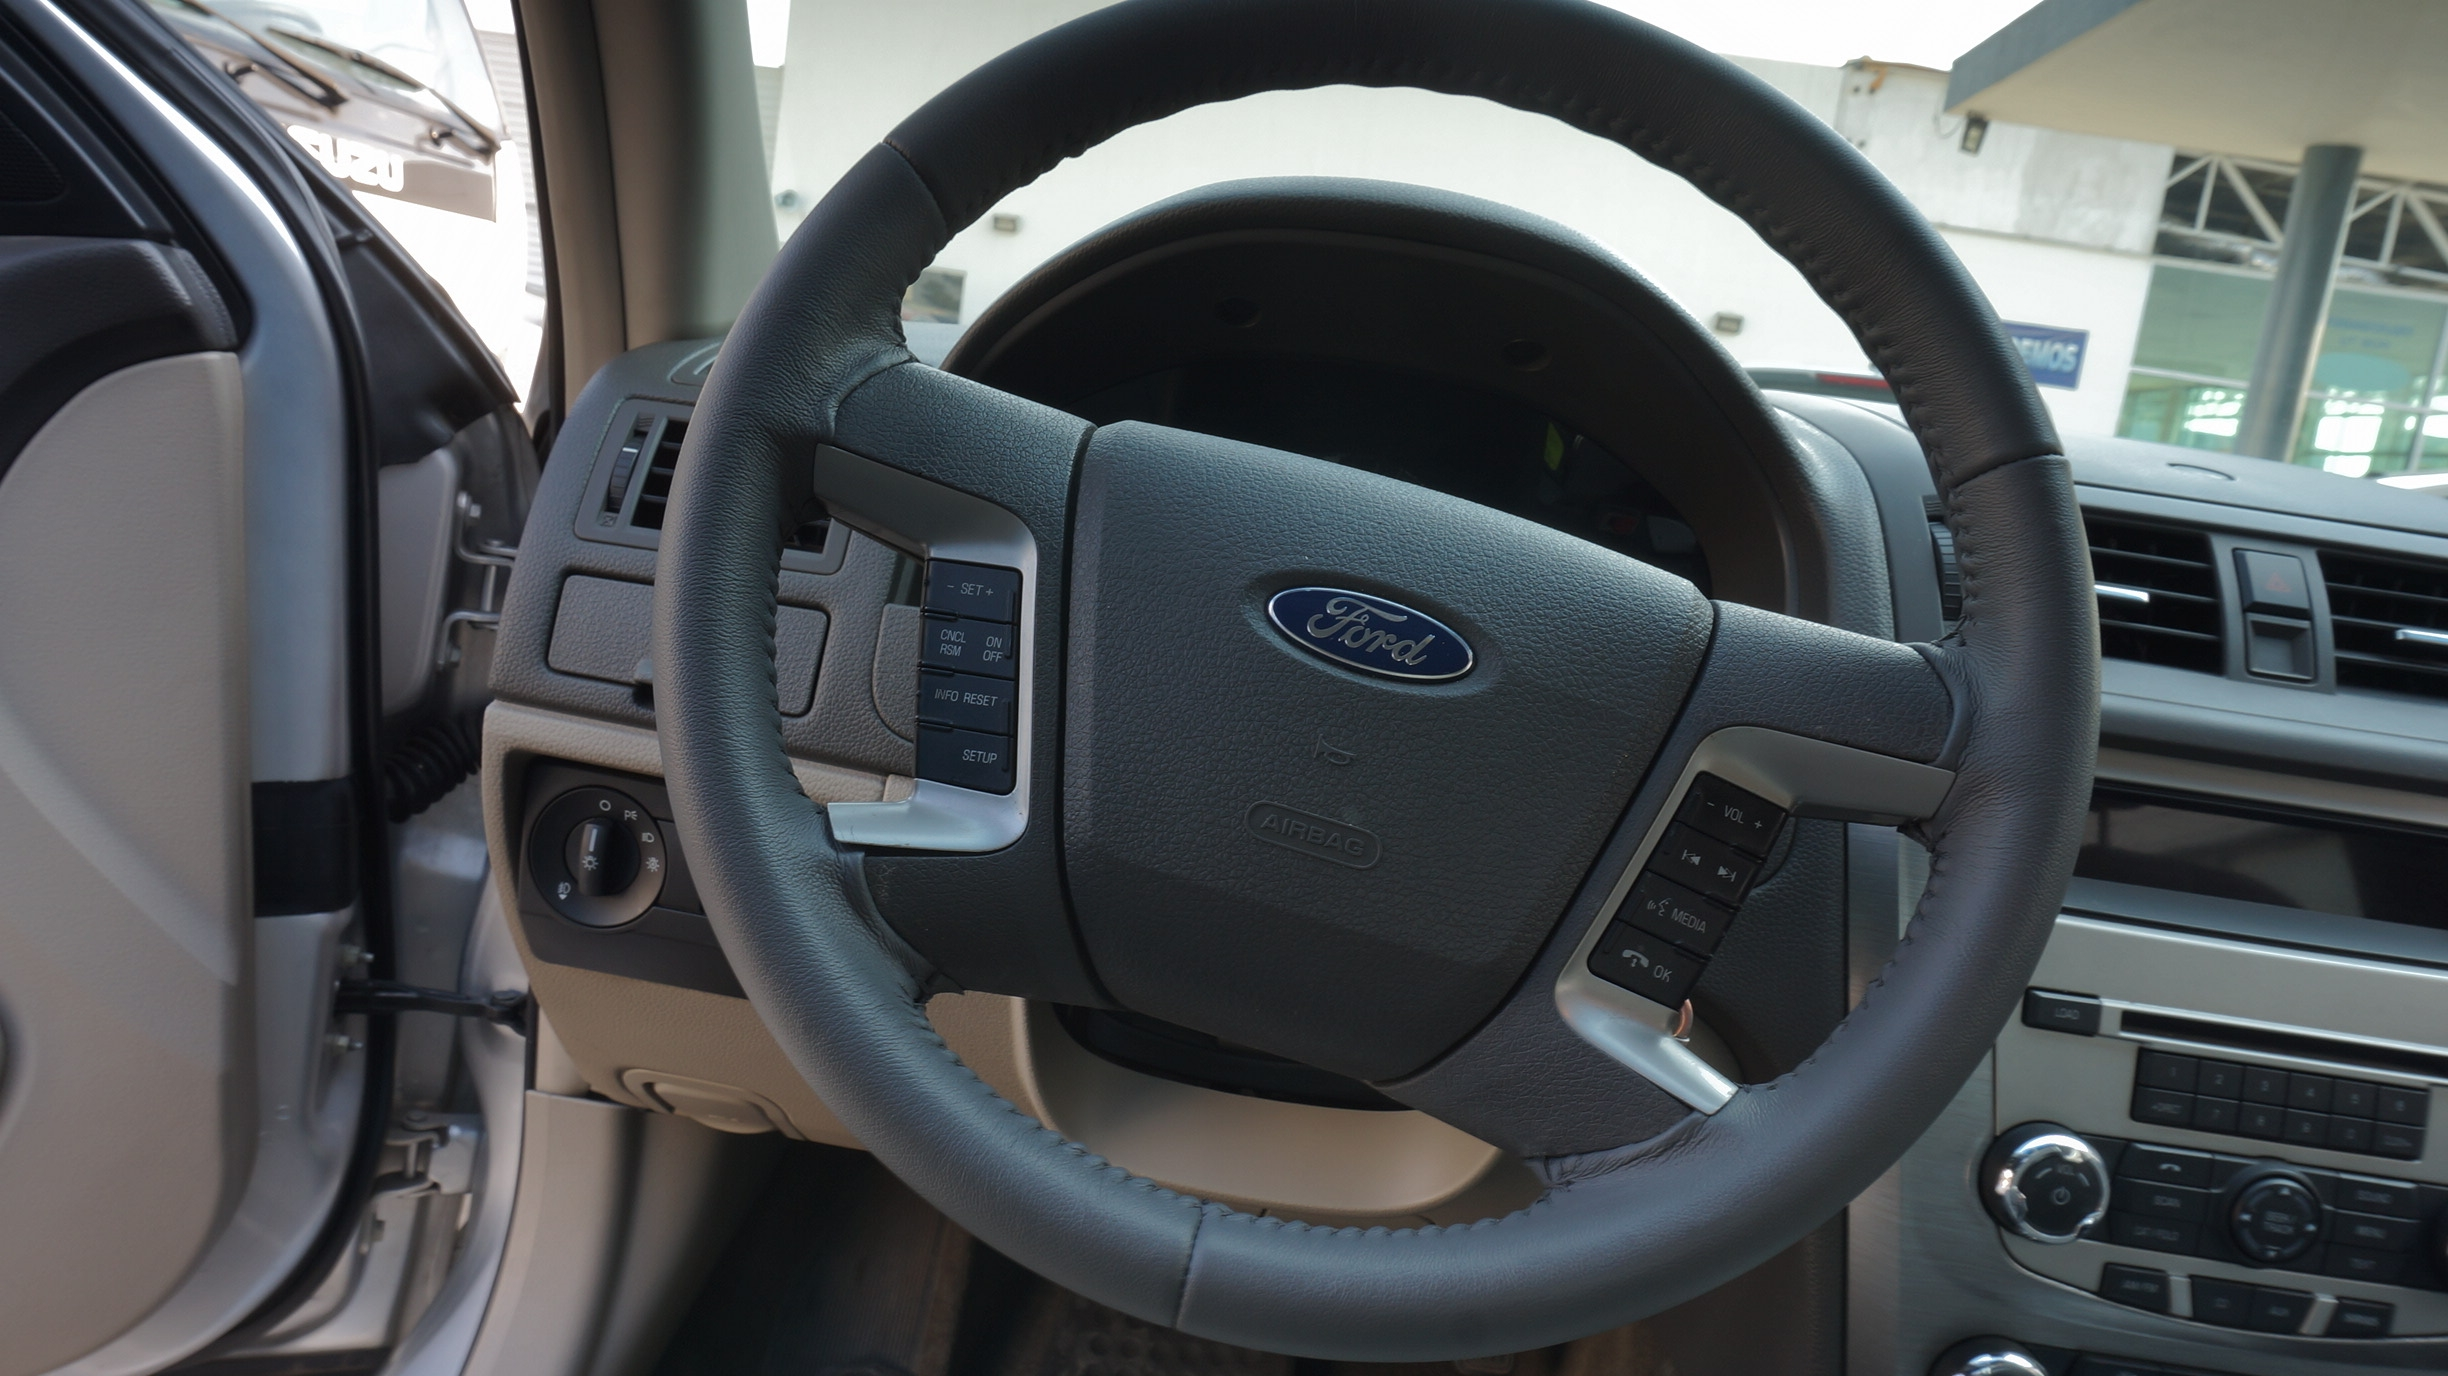 Ford Fusion Asientos 9